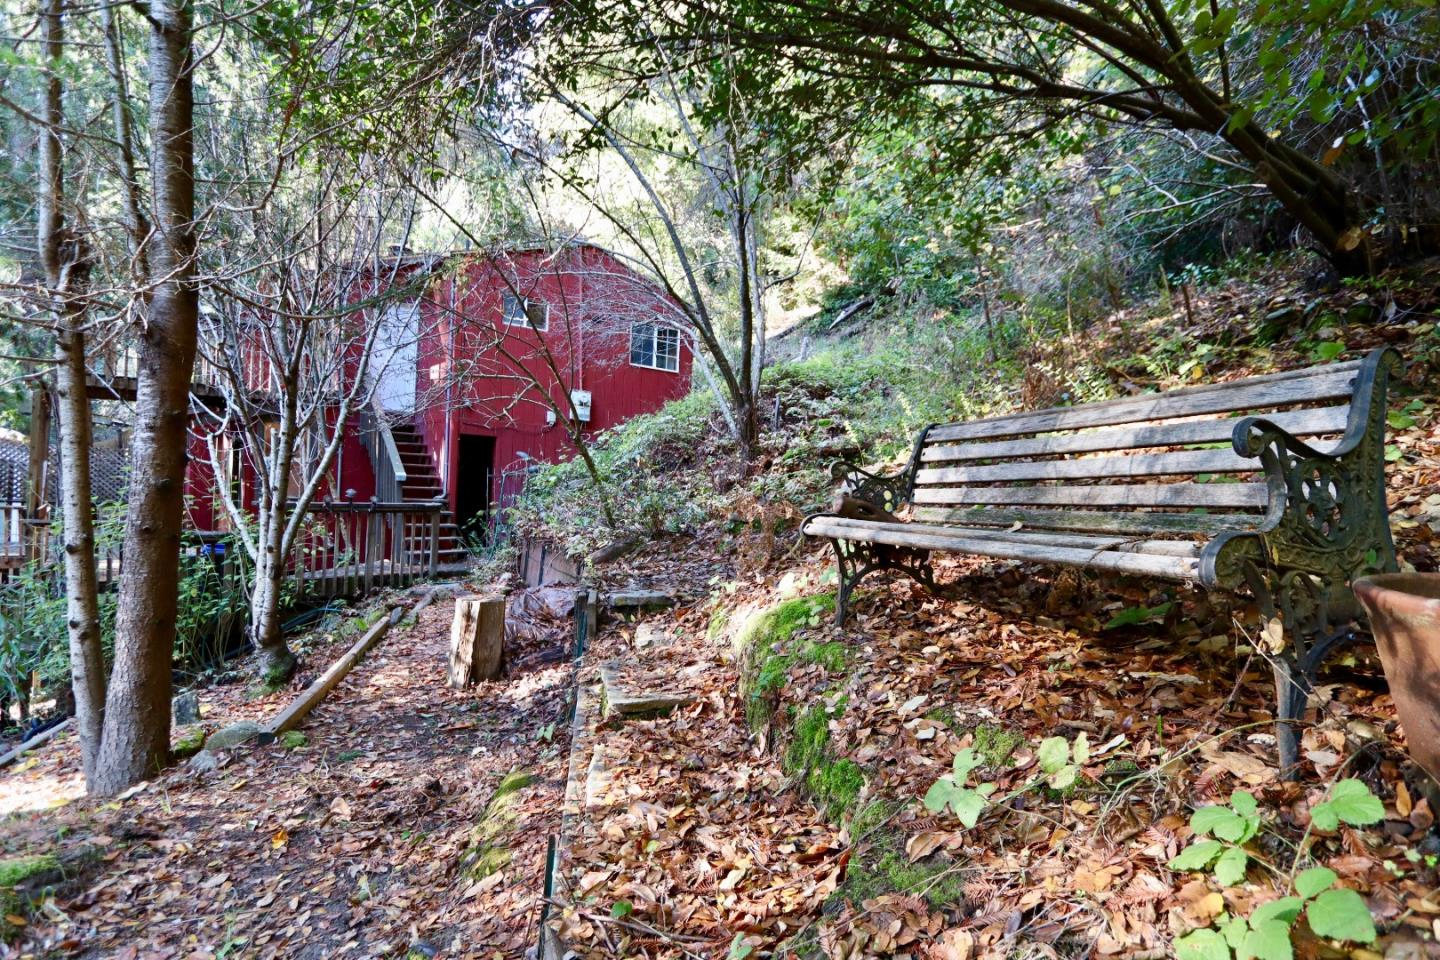 Just down the hill from beautiful Loch Lomond sits a wonderful little home that offers you the sweat equity opportunity at a very affordable price. This 3 bedroom 2 bath home is a blank canvas waiting for your design and upgrades. The property is being sold with 3 other adjoining parcels that total over 1/3 of an acre.  This property will not be eligible for conventional financing so it will either require cash, or another alternative.  Bring your creative perspective and see if this is the opportunity that you have been waiting for.